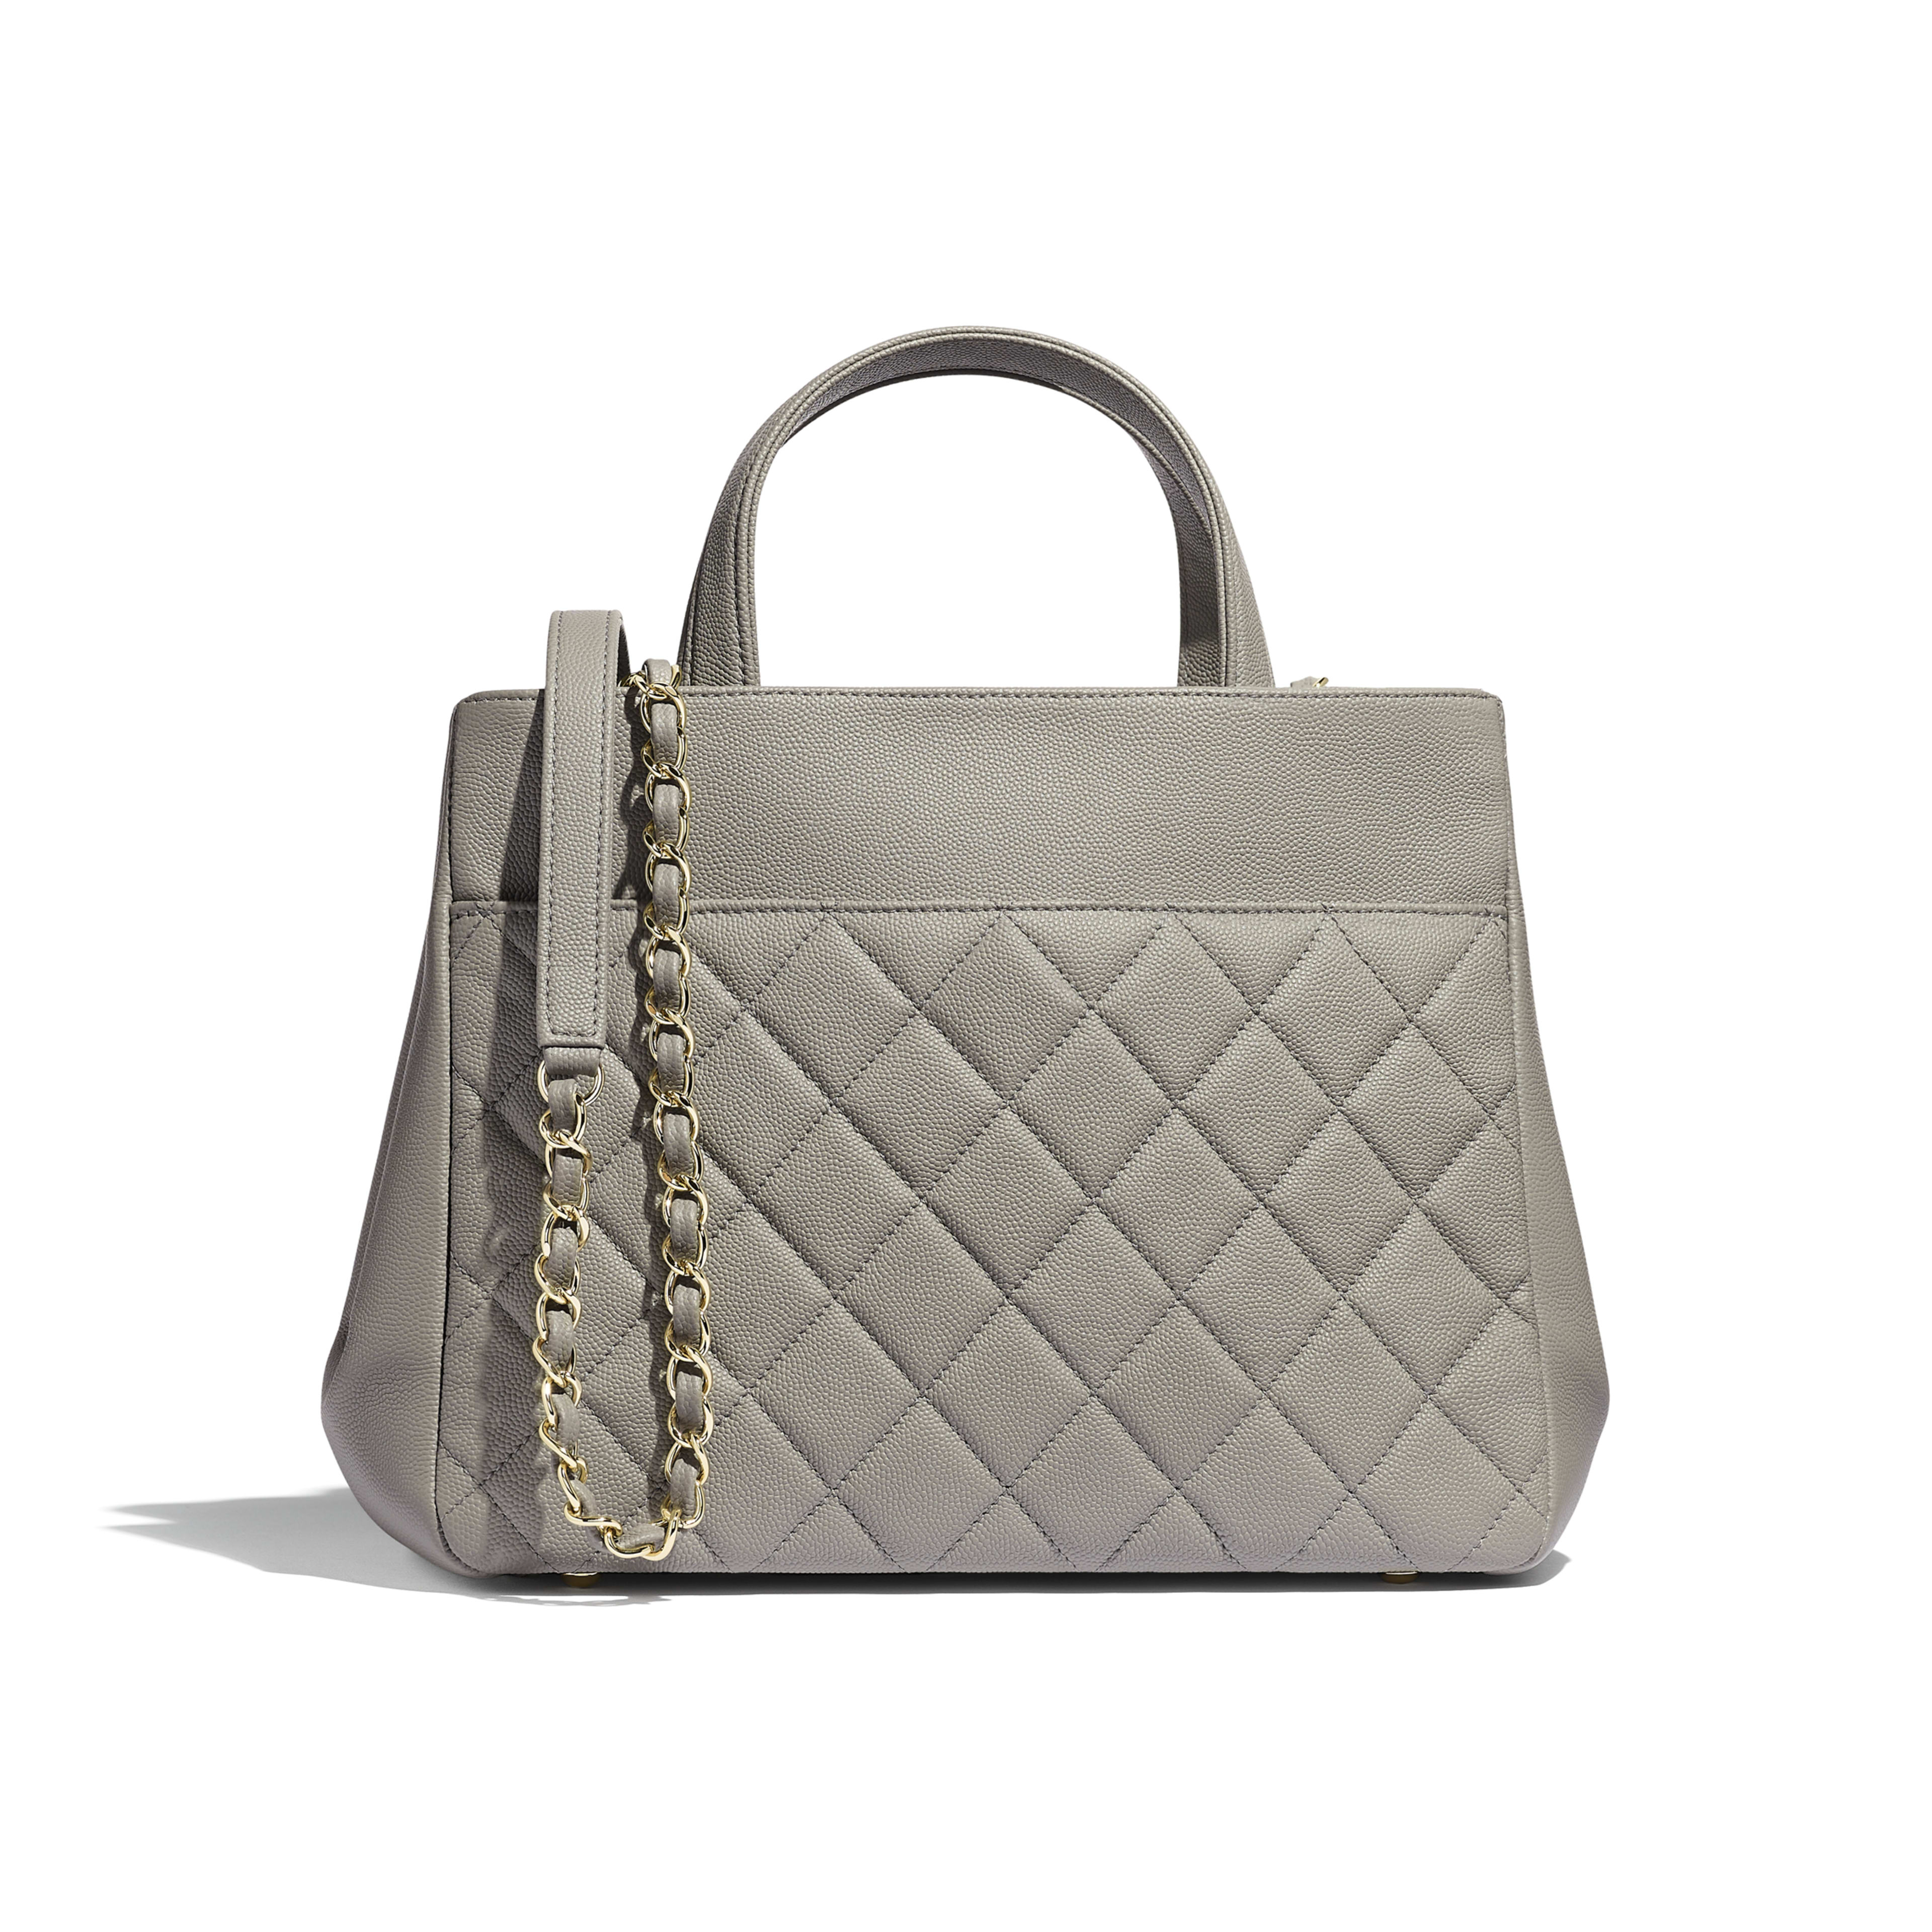 Small Shopping Bag - Gray - Grained Calfskin & Gold-Tone Metal - Alternative view - see full sized version